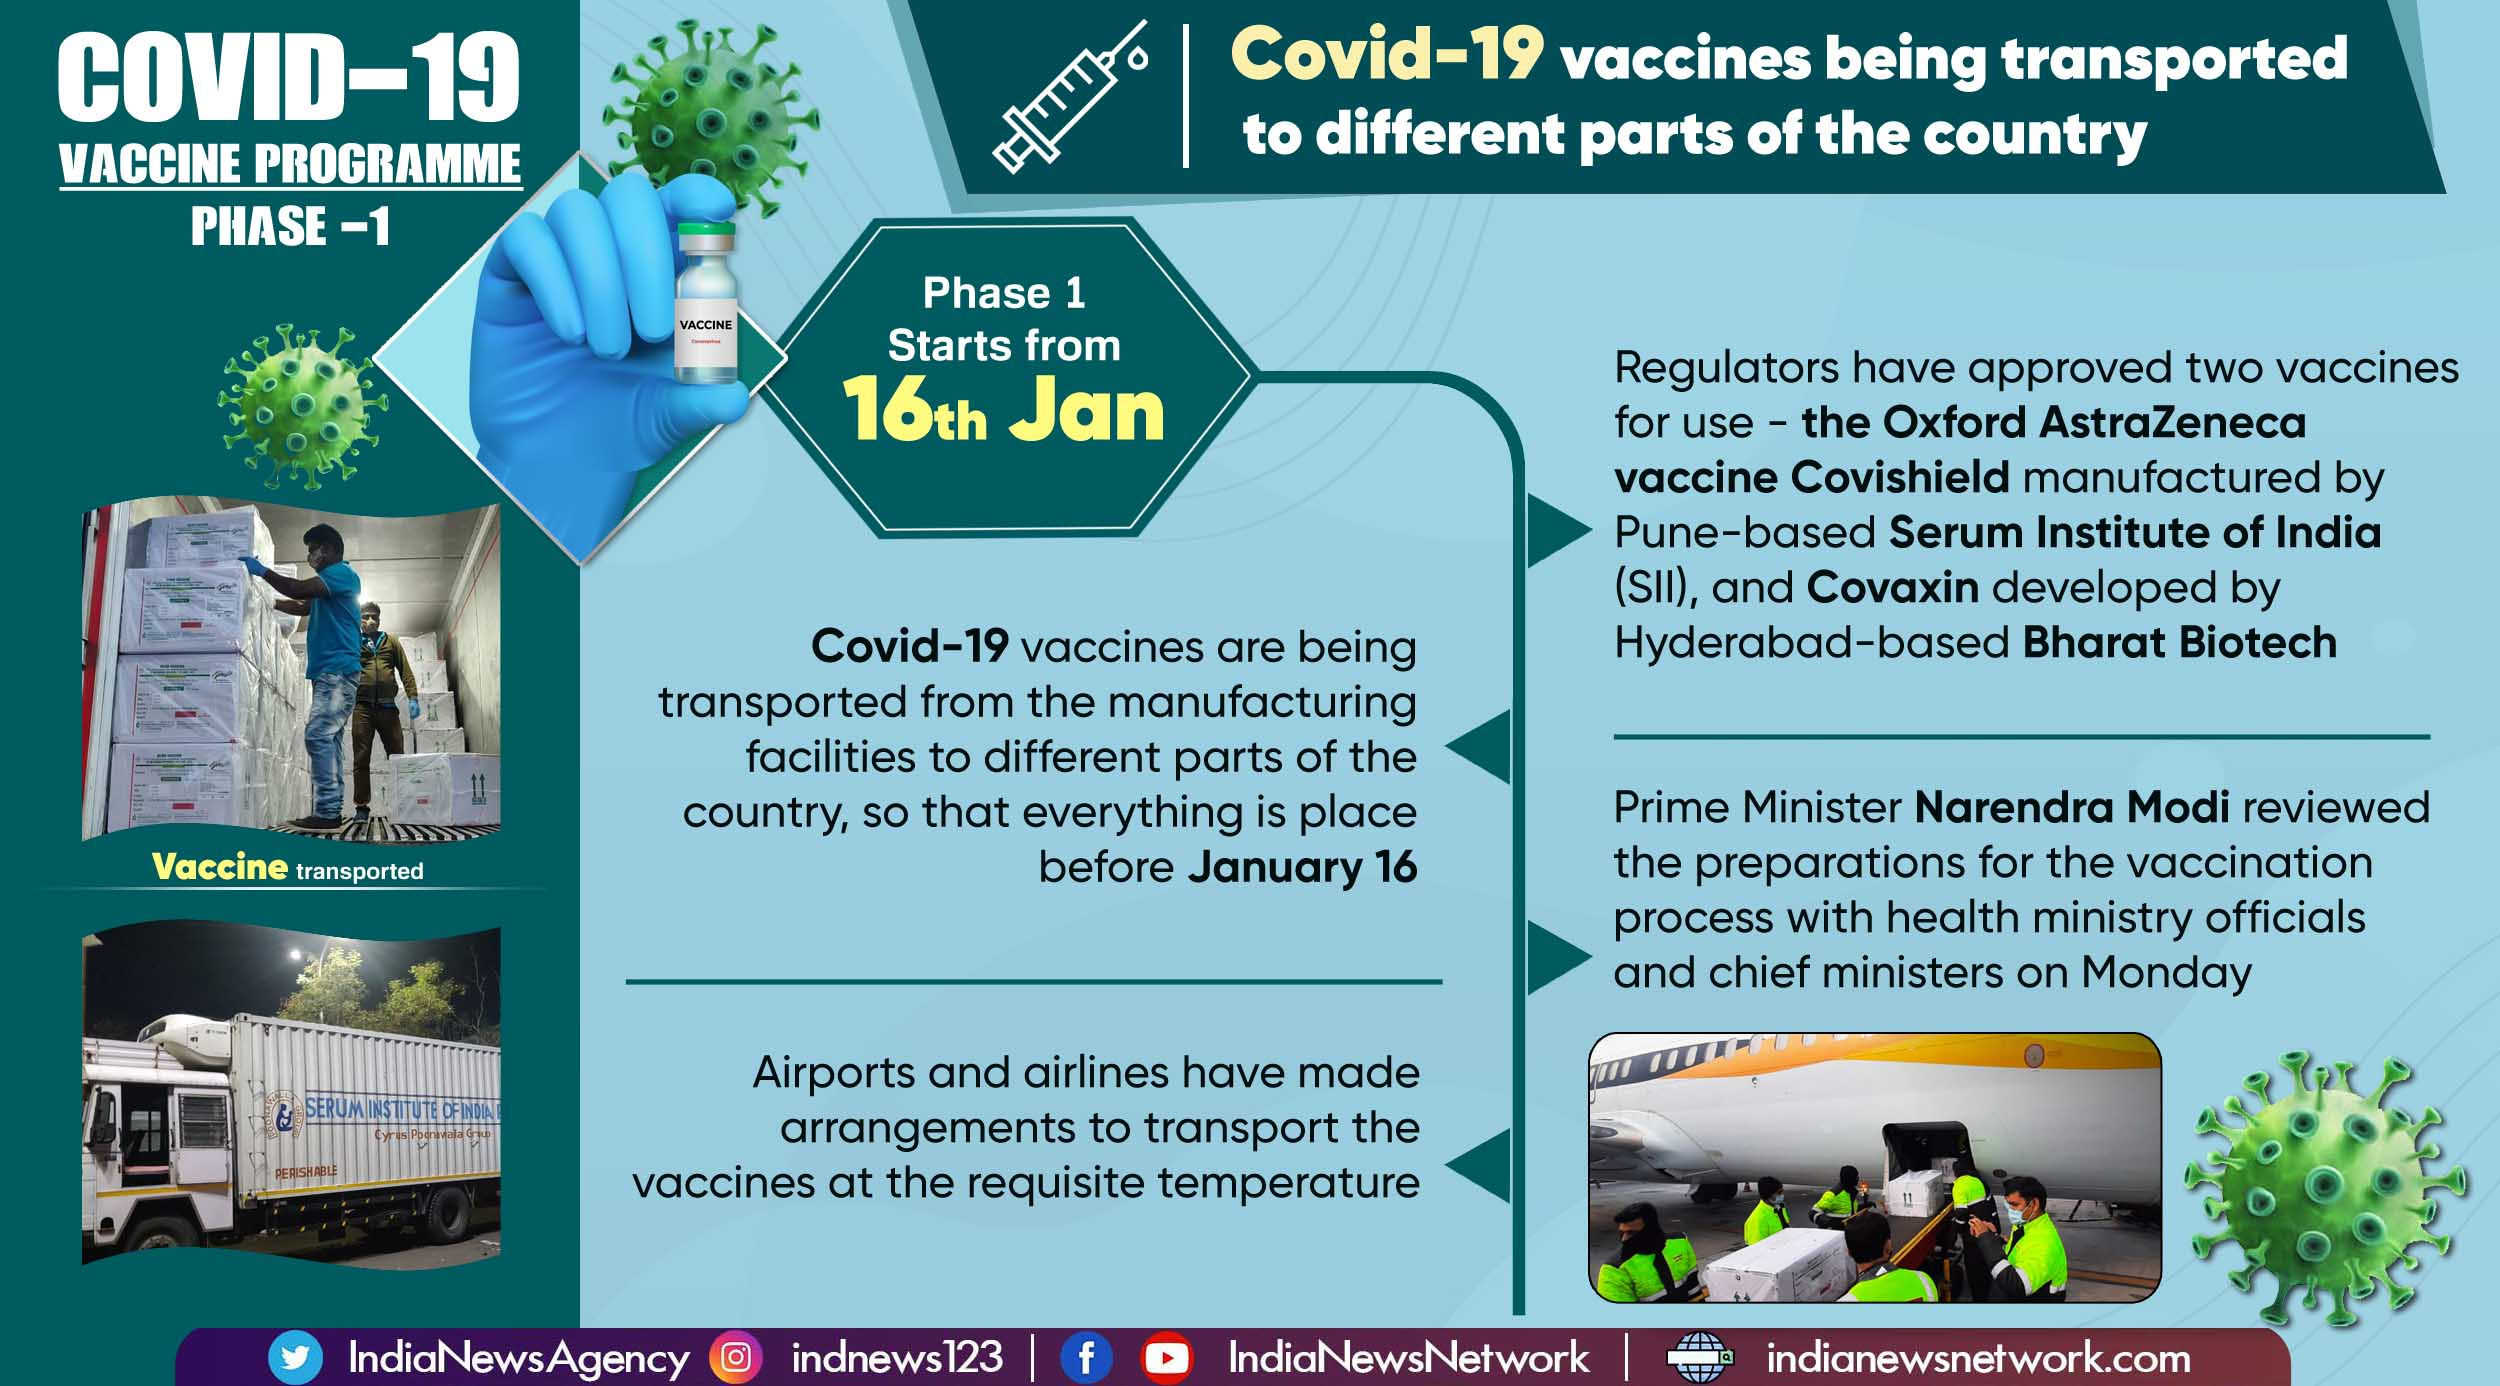 Covid-19 vaccine: All set for January 16 rollout of vaccination process in India